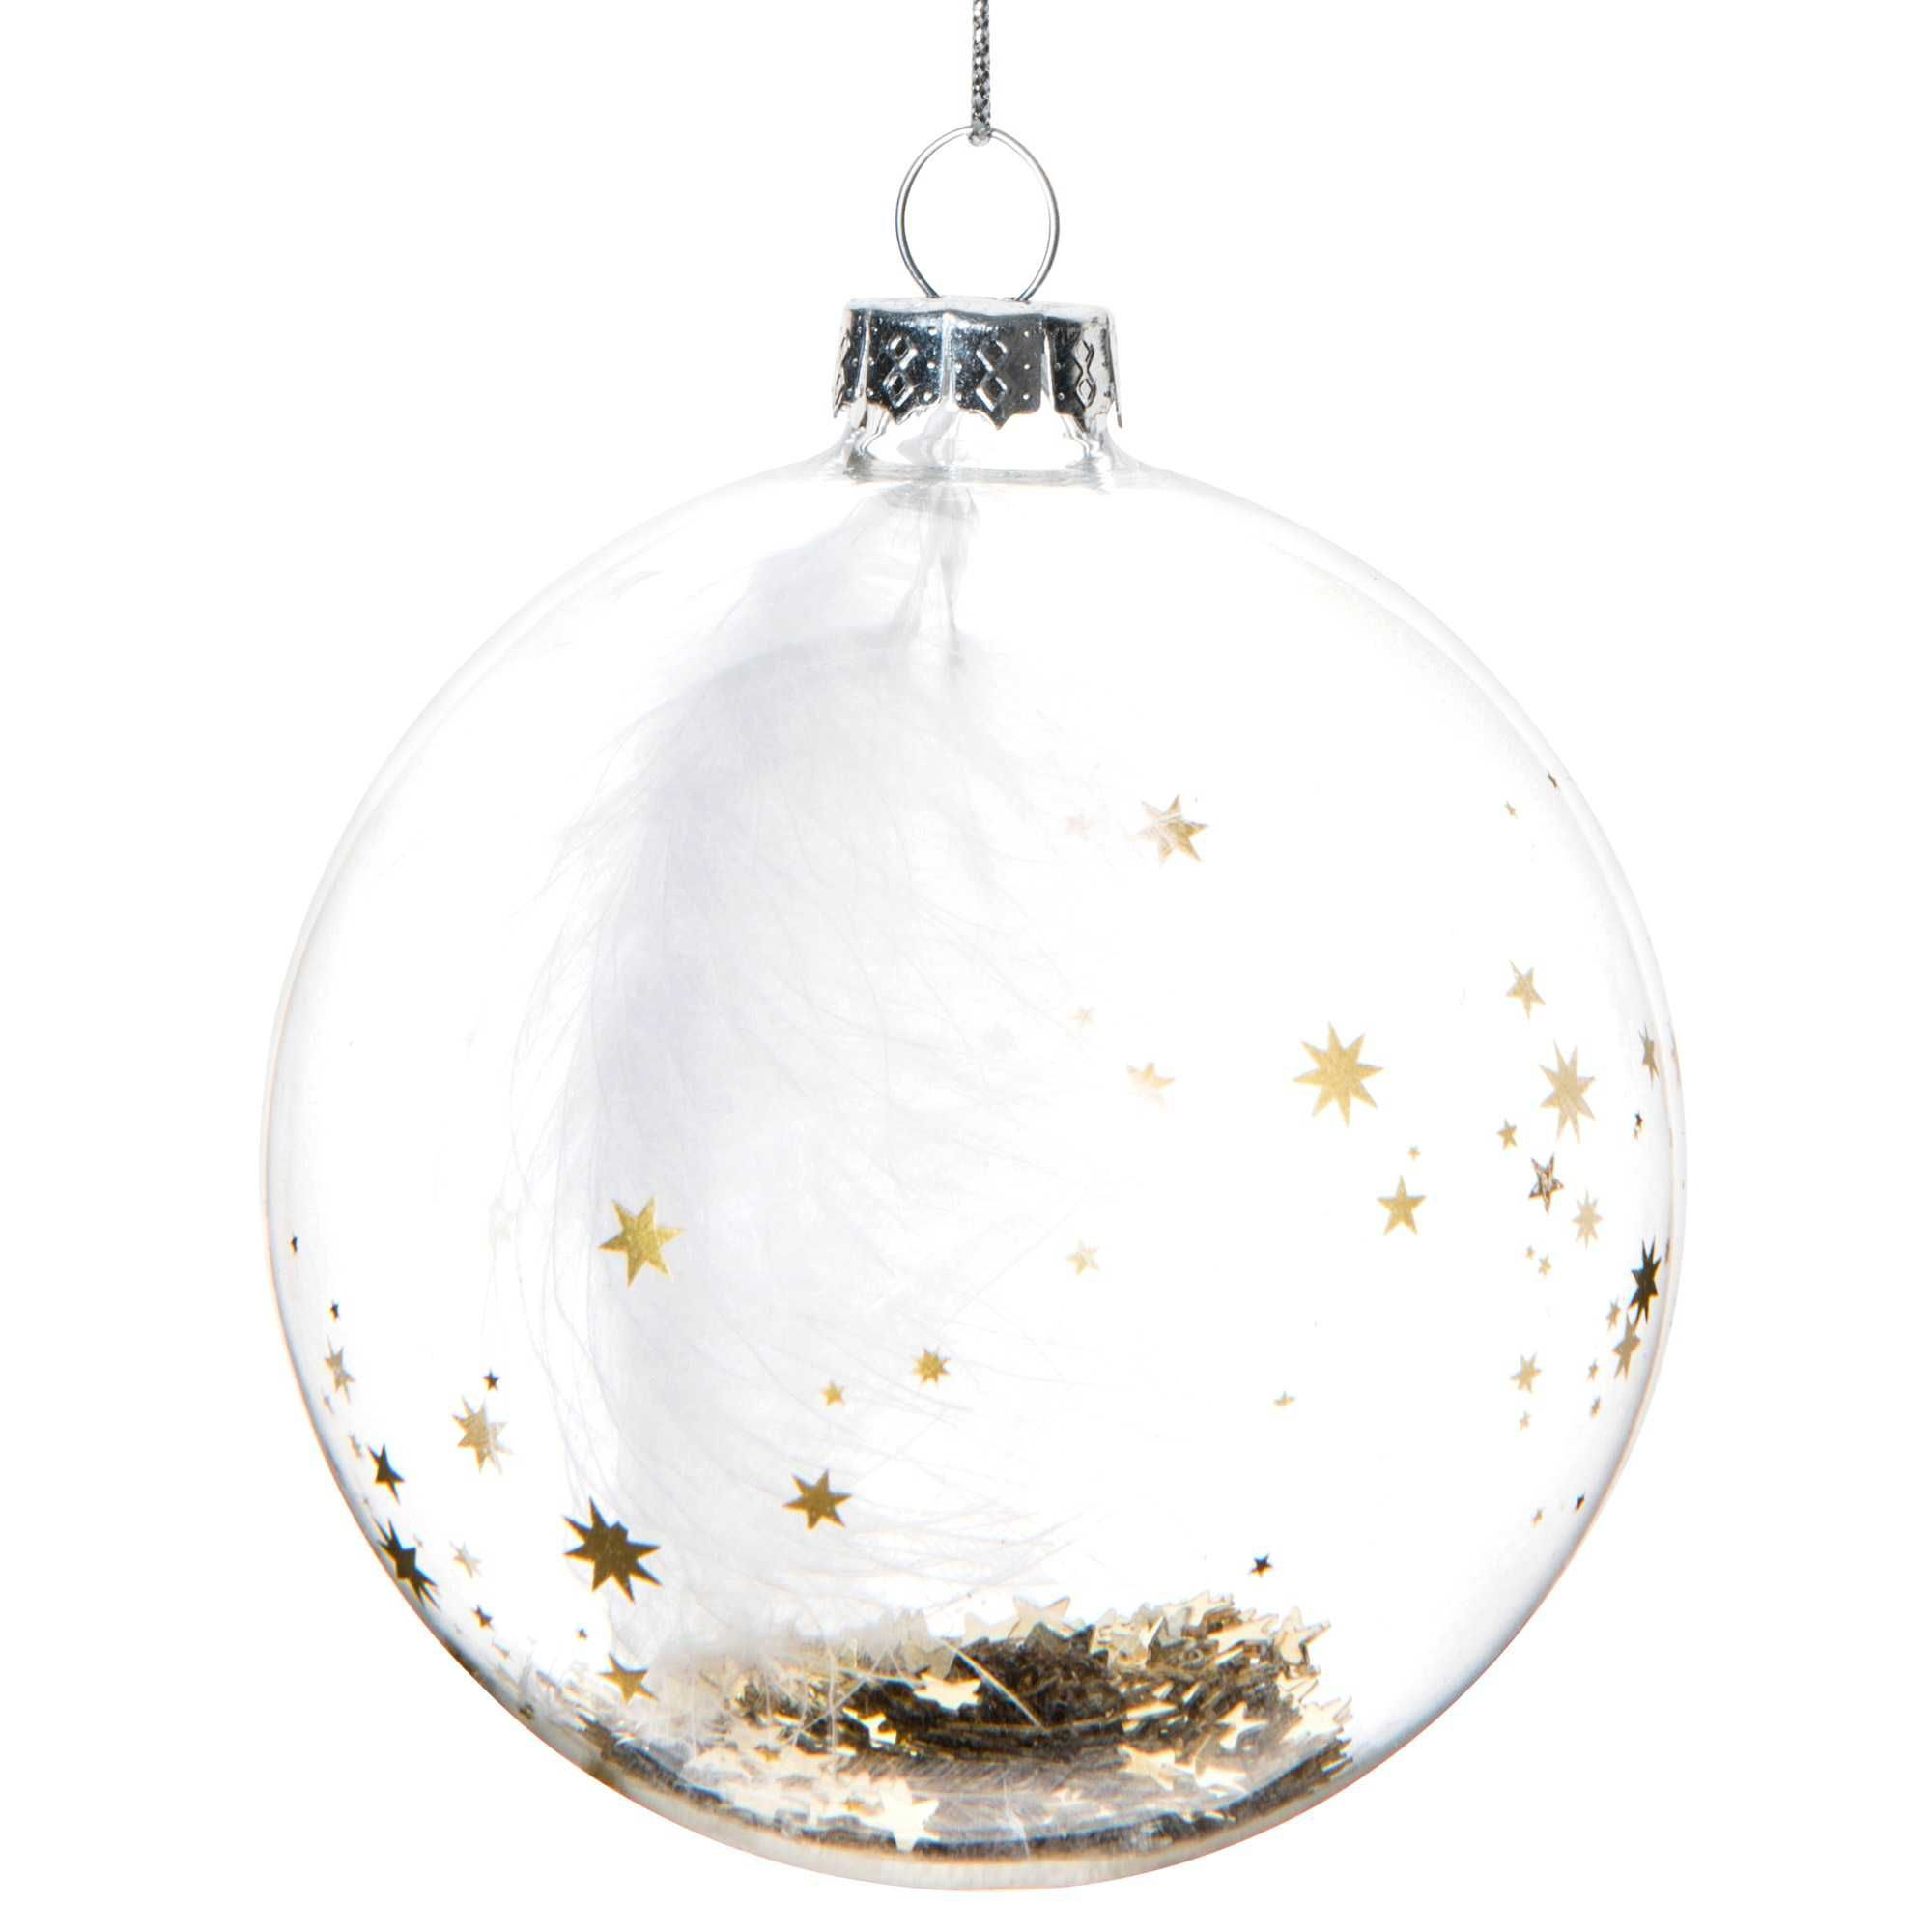 boule de no l transparente en verre 8 cm starry night vendu par 4 winter wonderland